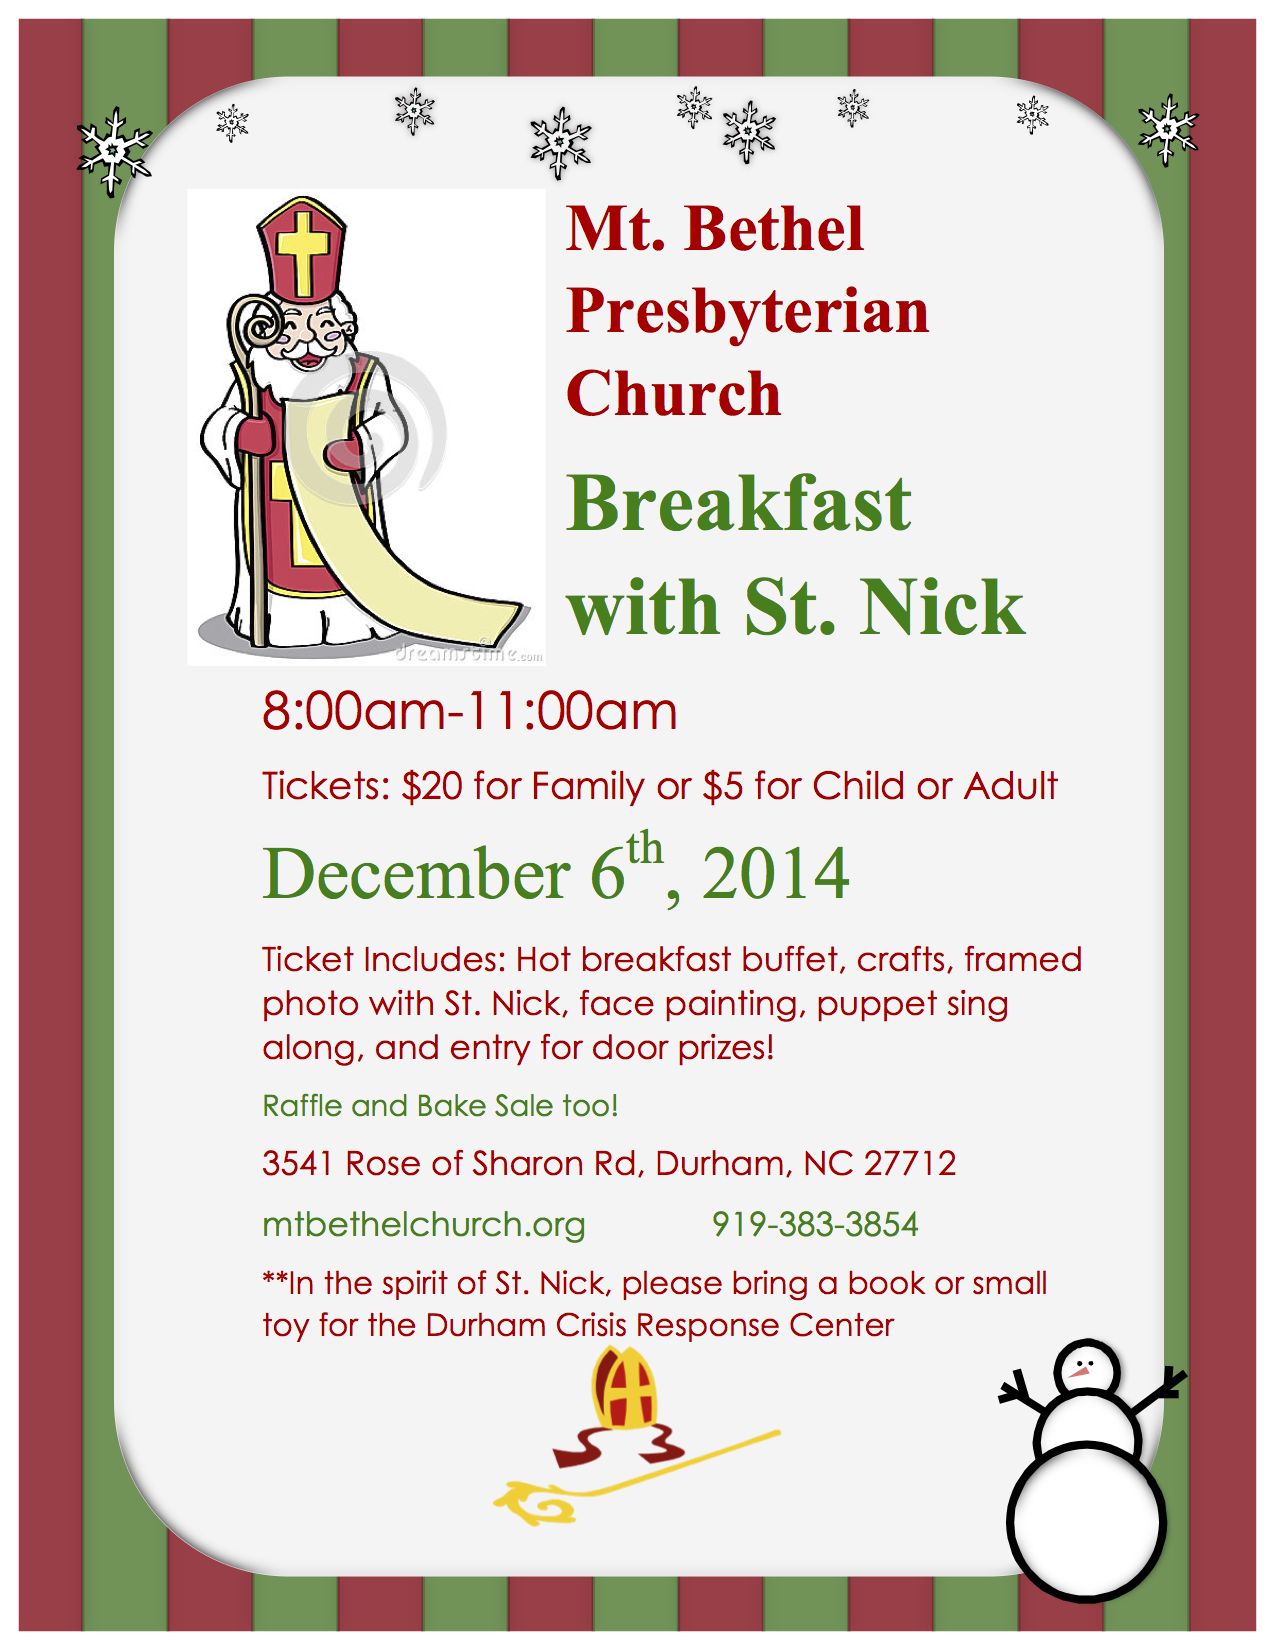 St. Nick flyer